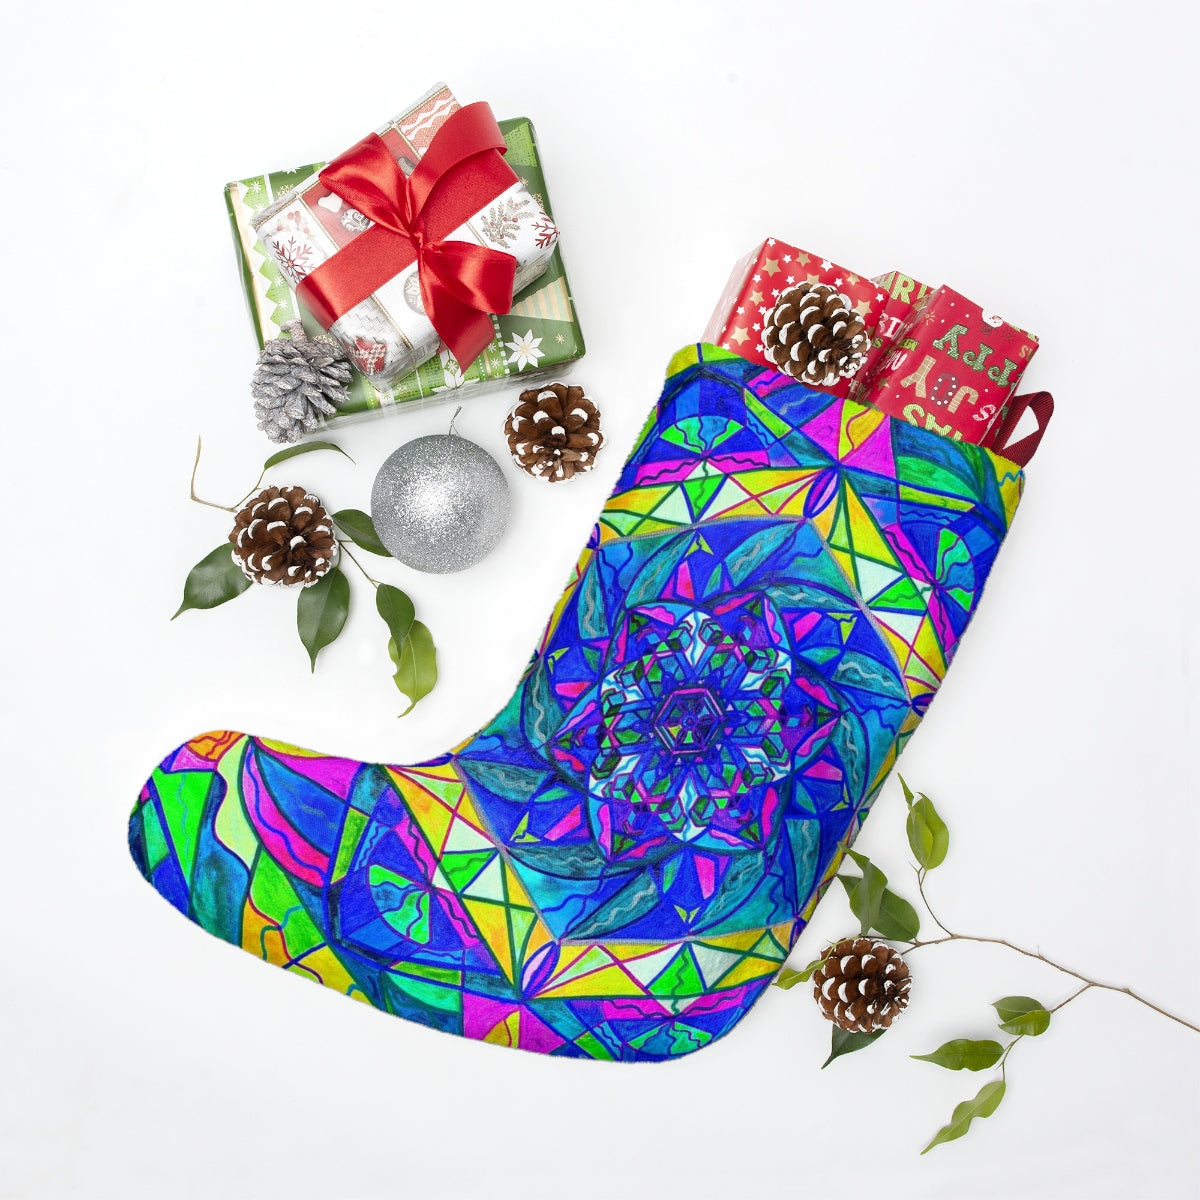 Positive Focus - Christmas Stockings